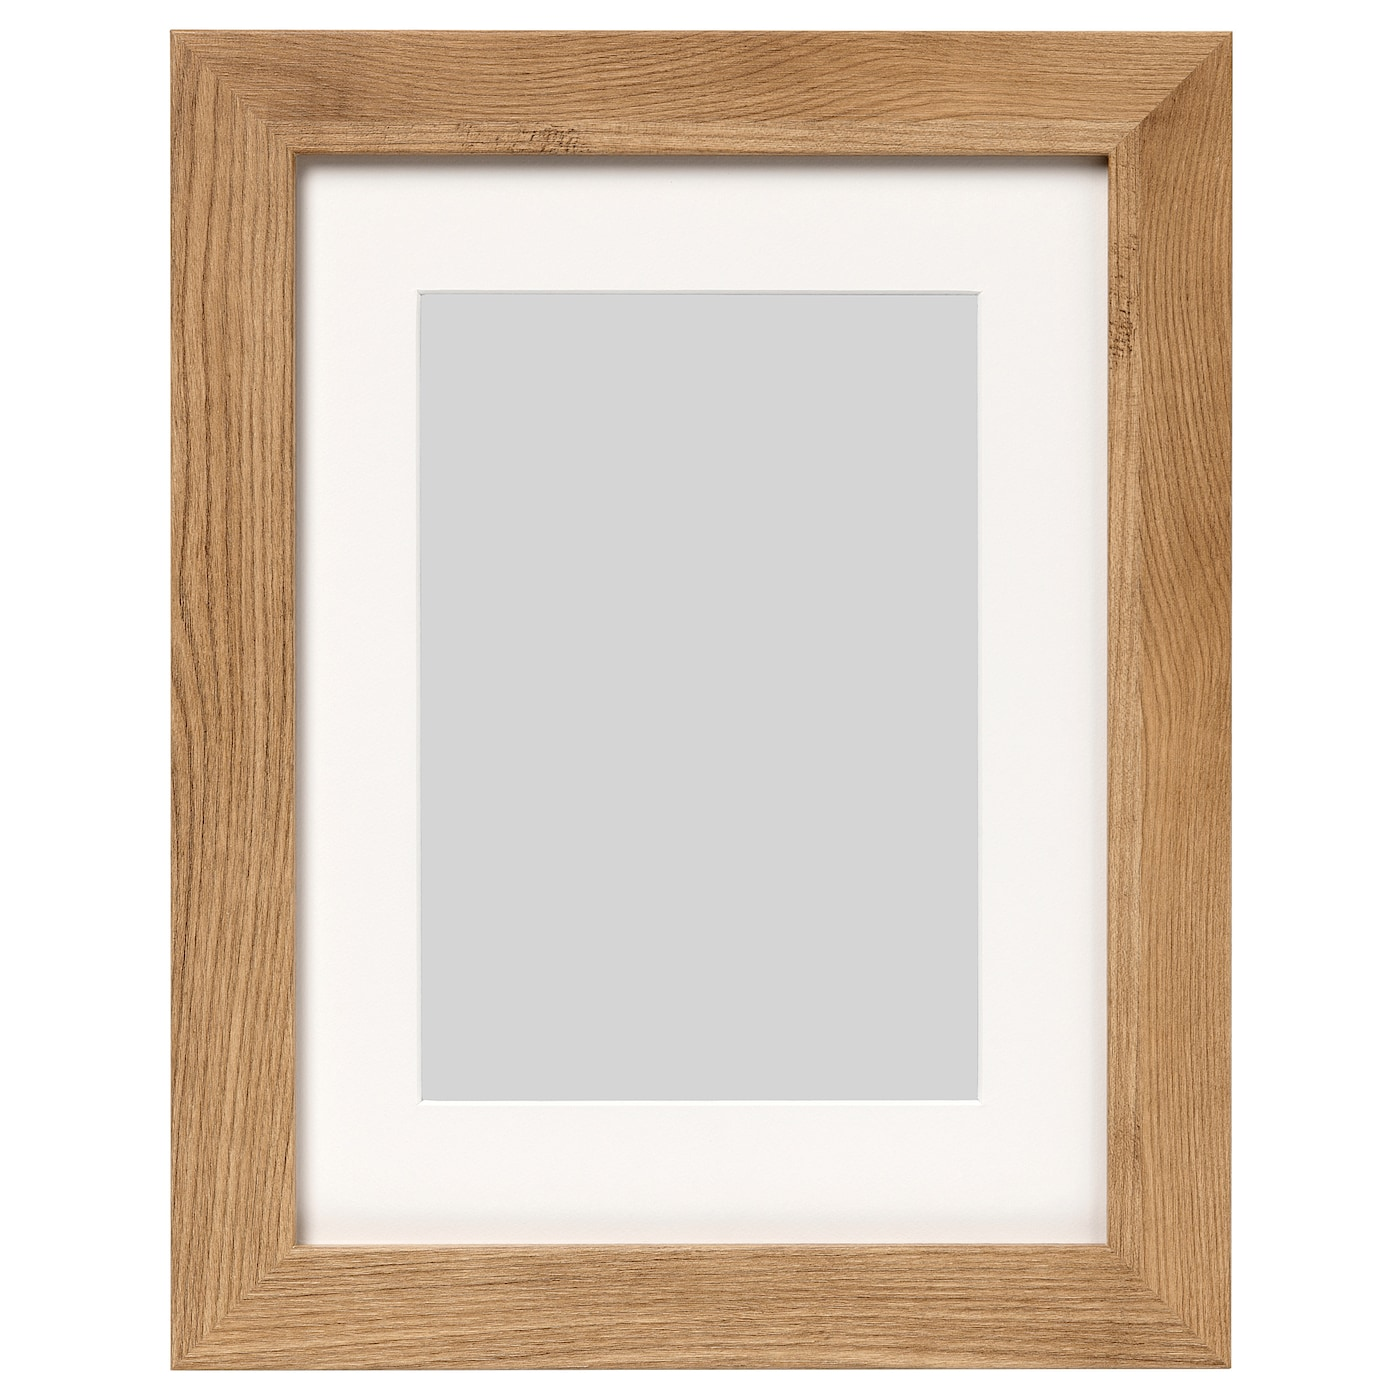 IKEA DALSKÄRR frame Can be hung horizontally or vertically to fit in the  space available. f0c85cd006